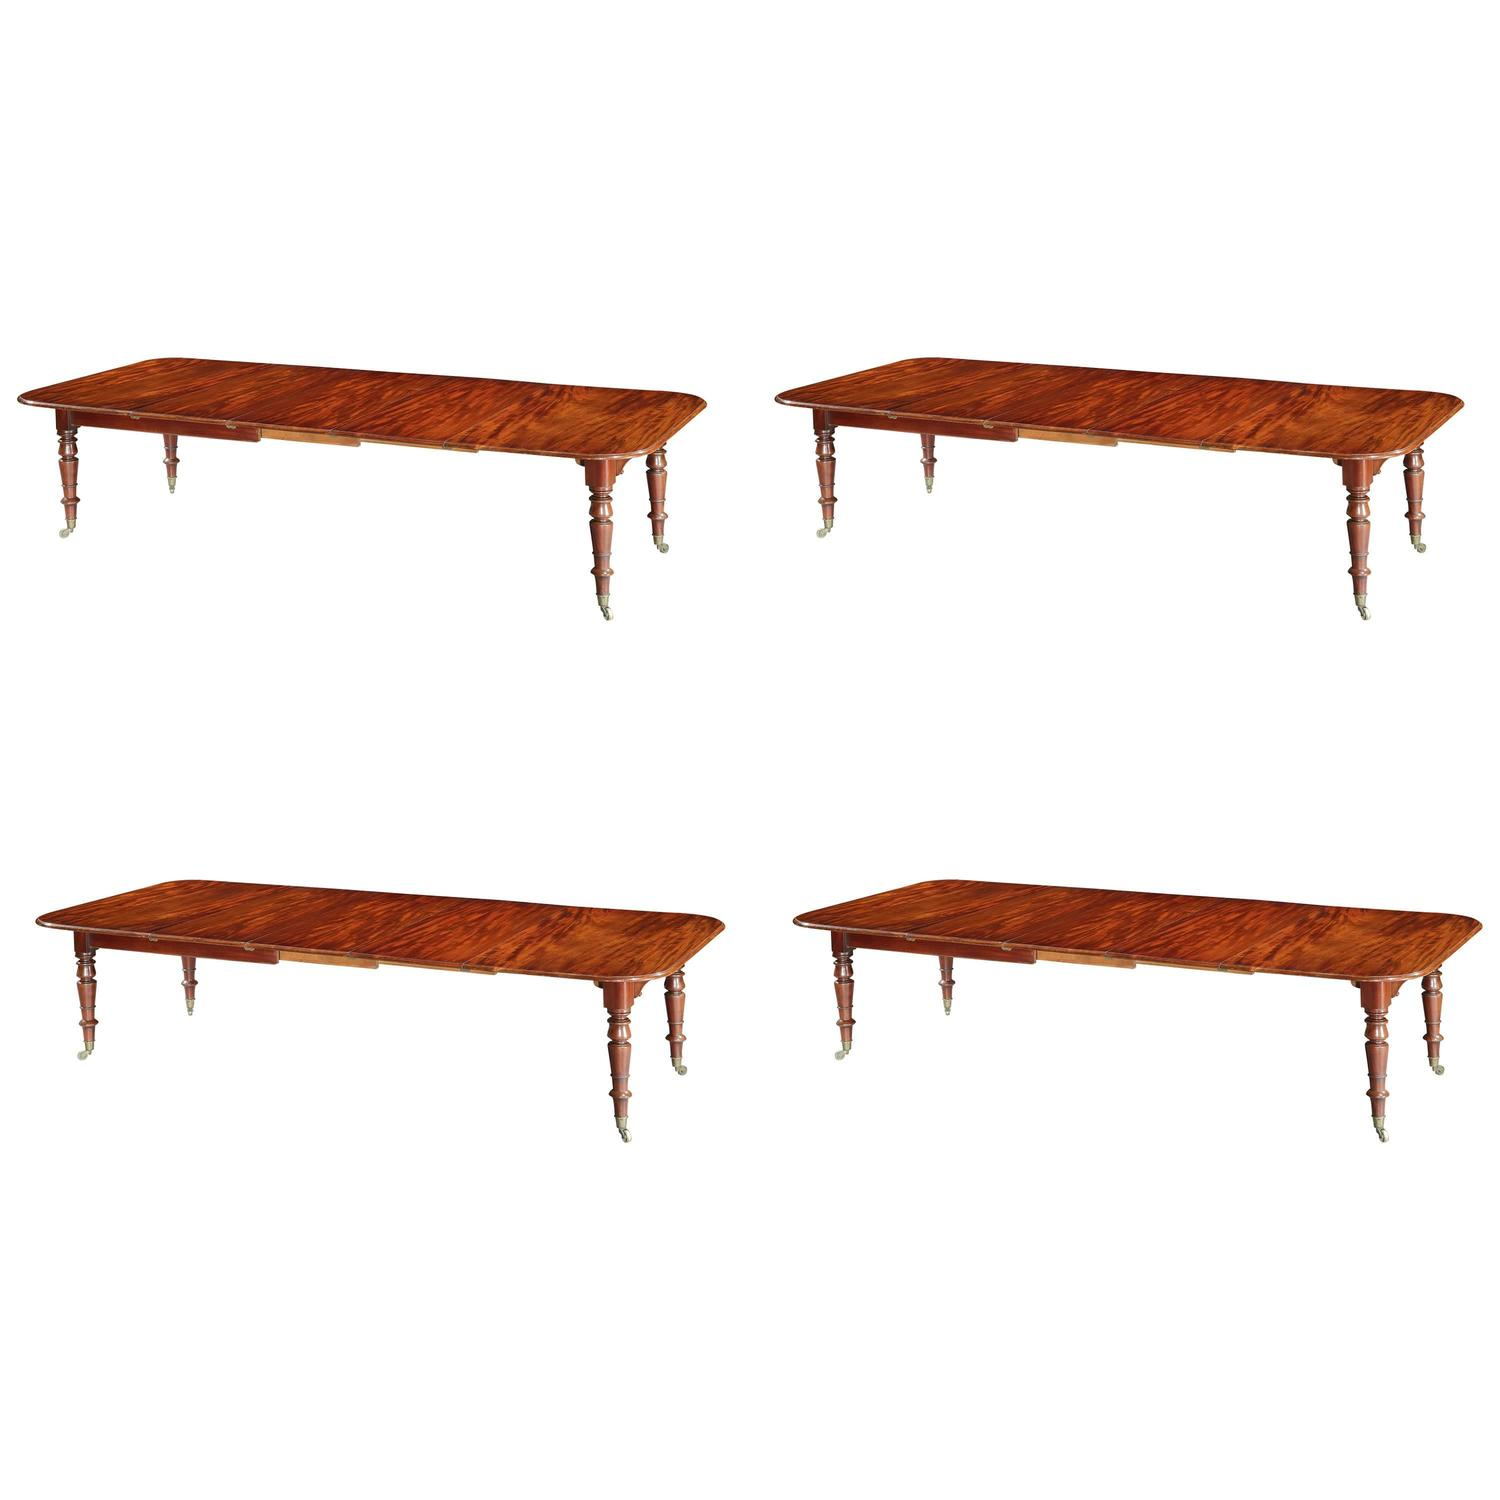 Dining Room Tables That Extend To Seat 12 William Iv Mahogany Telescopic Extending 12 Seat Dining